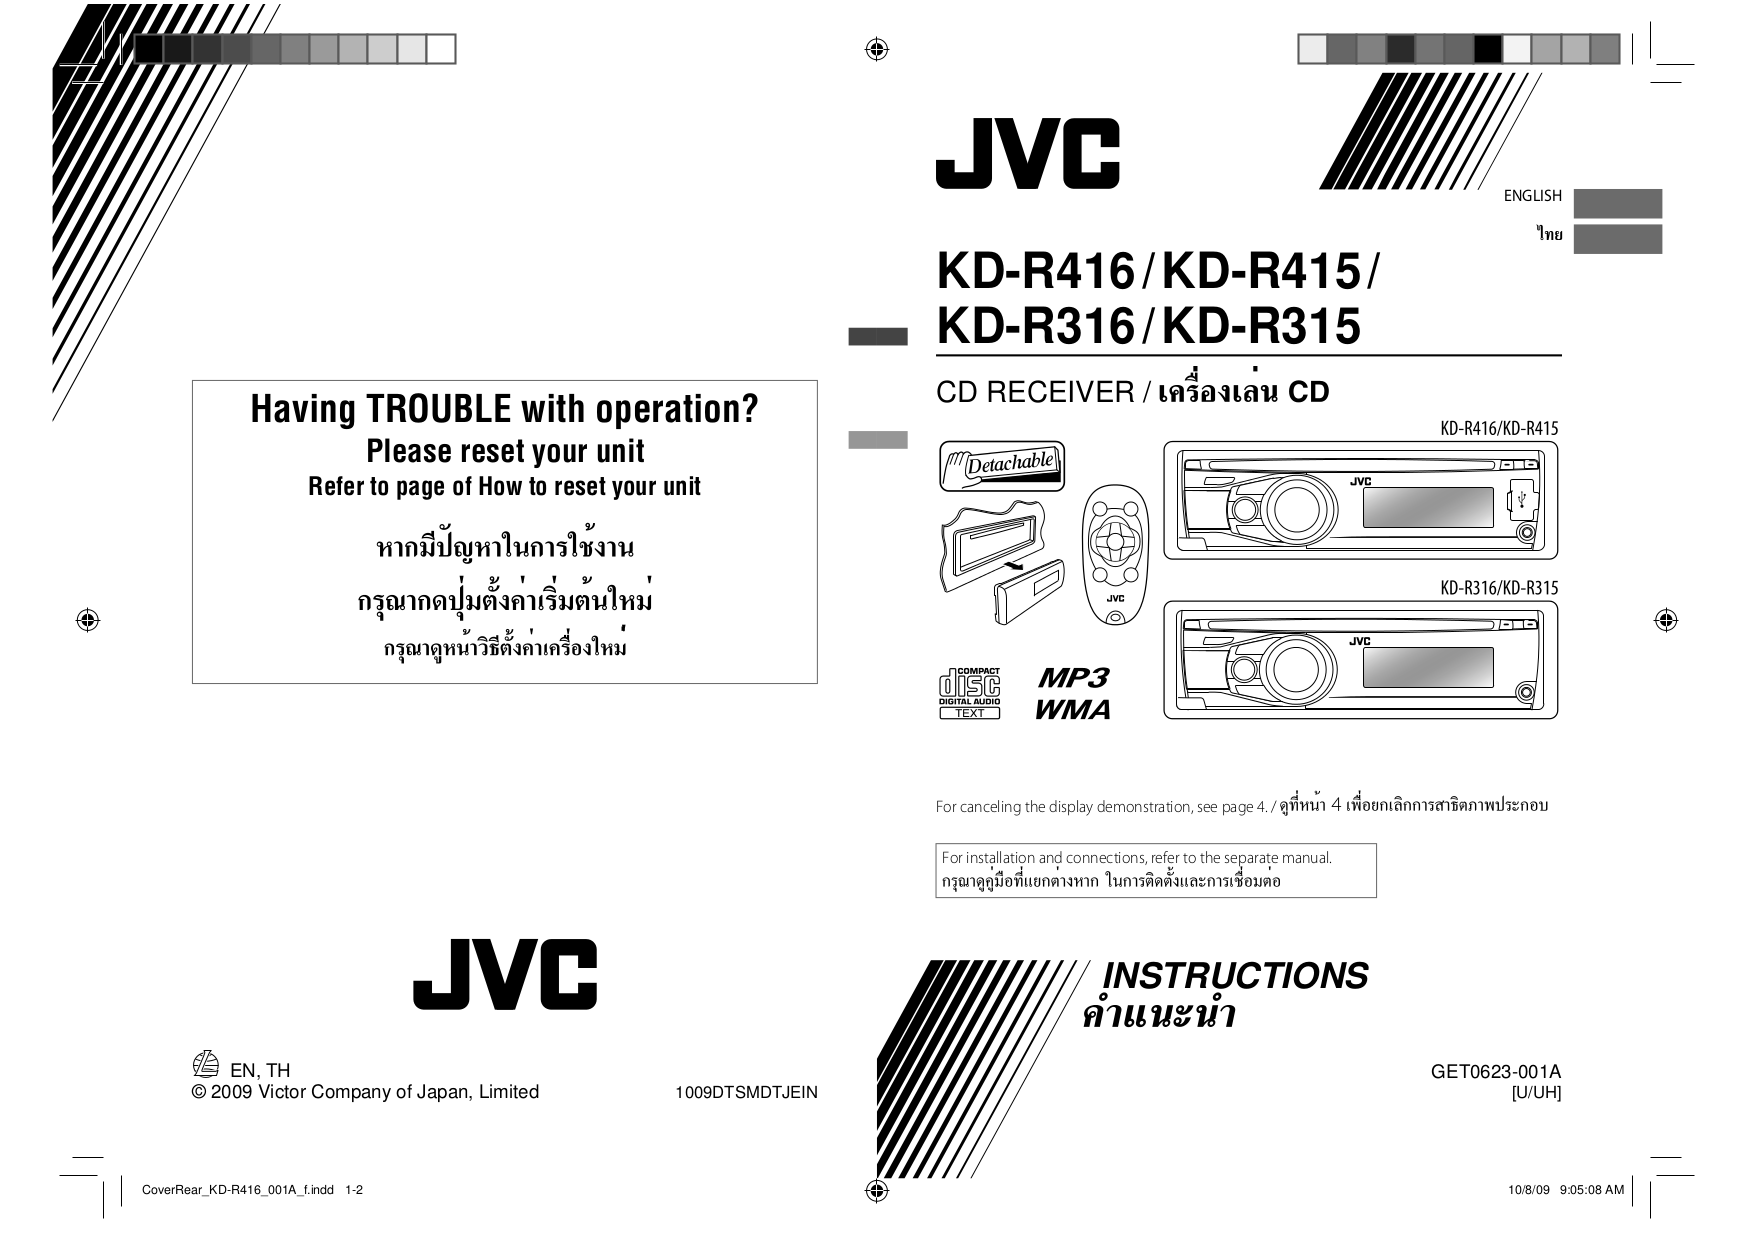 jvc kd r416 wiring diagram   26 wiring diagram images